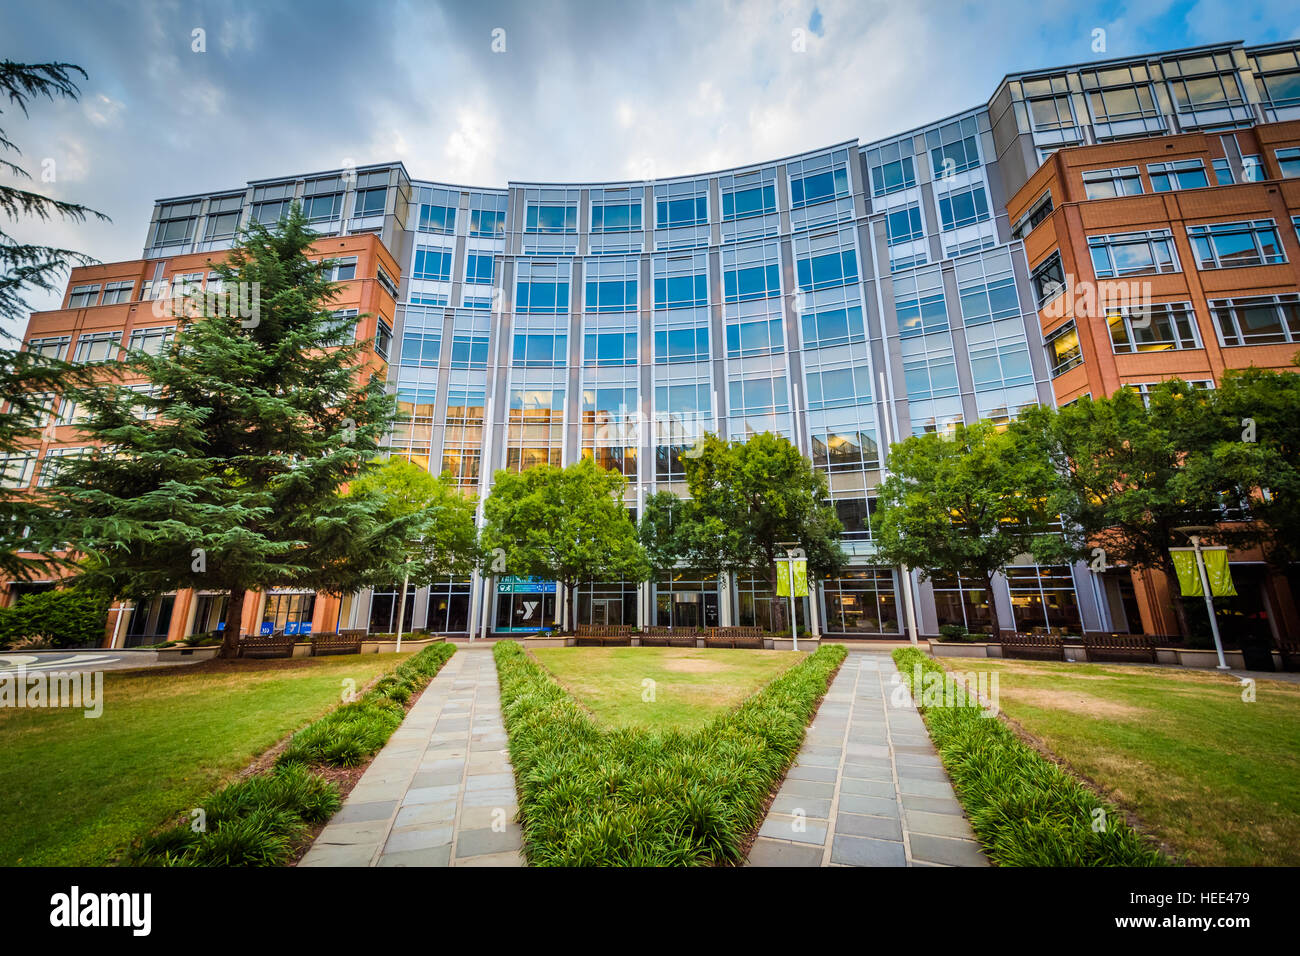 Walkways and building at Johnson & Wales University, in Charlotte, North Carolina. Stock Photo